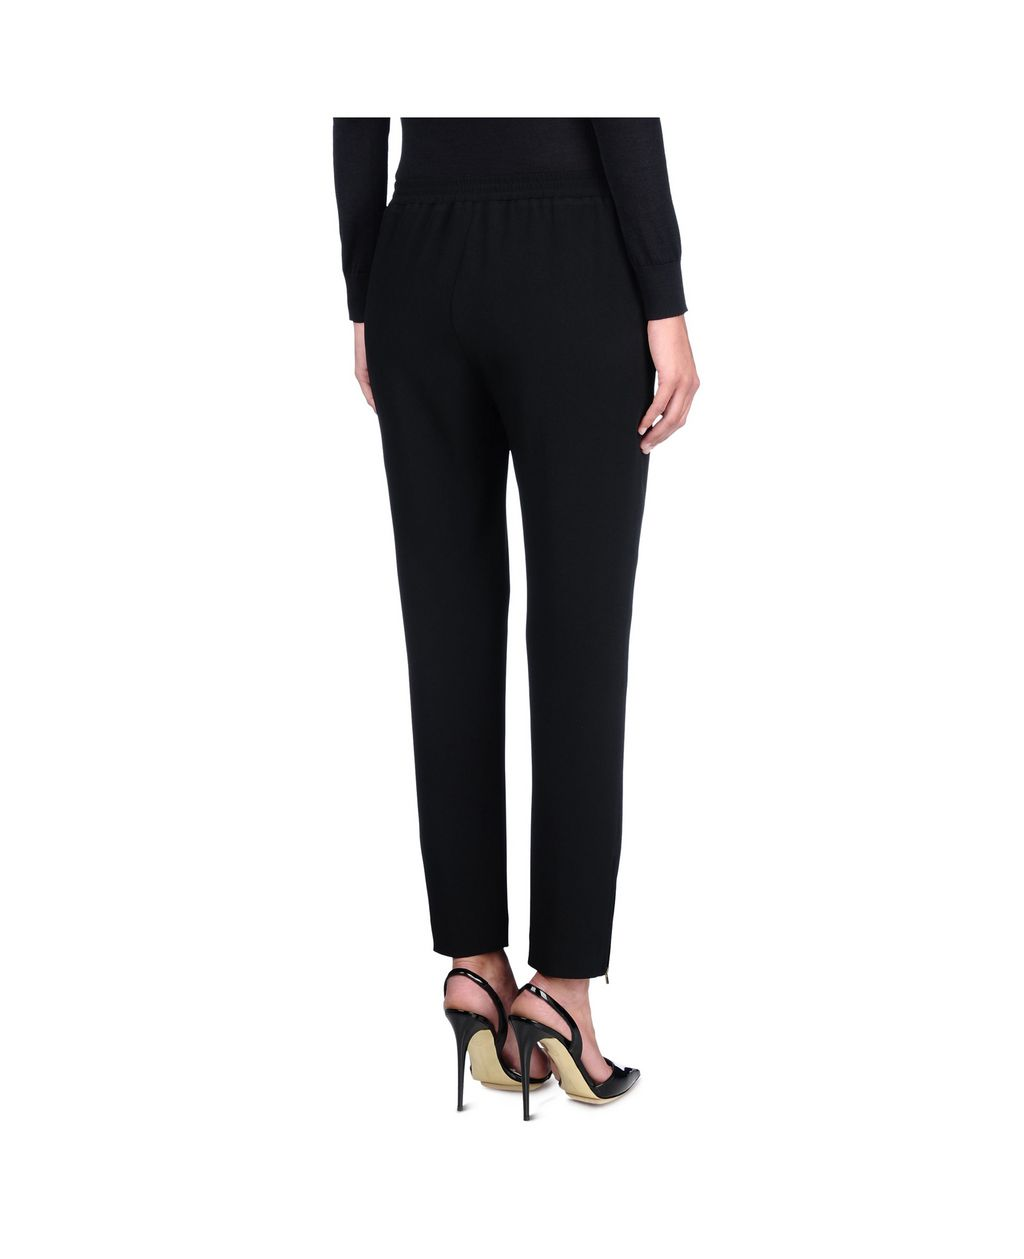 Pantalon Tamara noir - STELLA MCCARTNEY